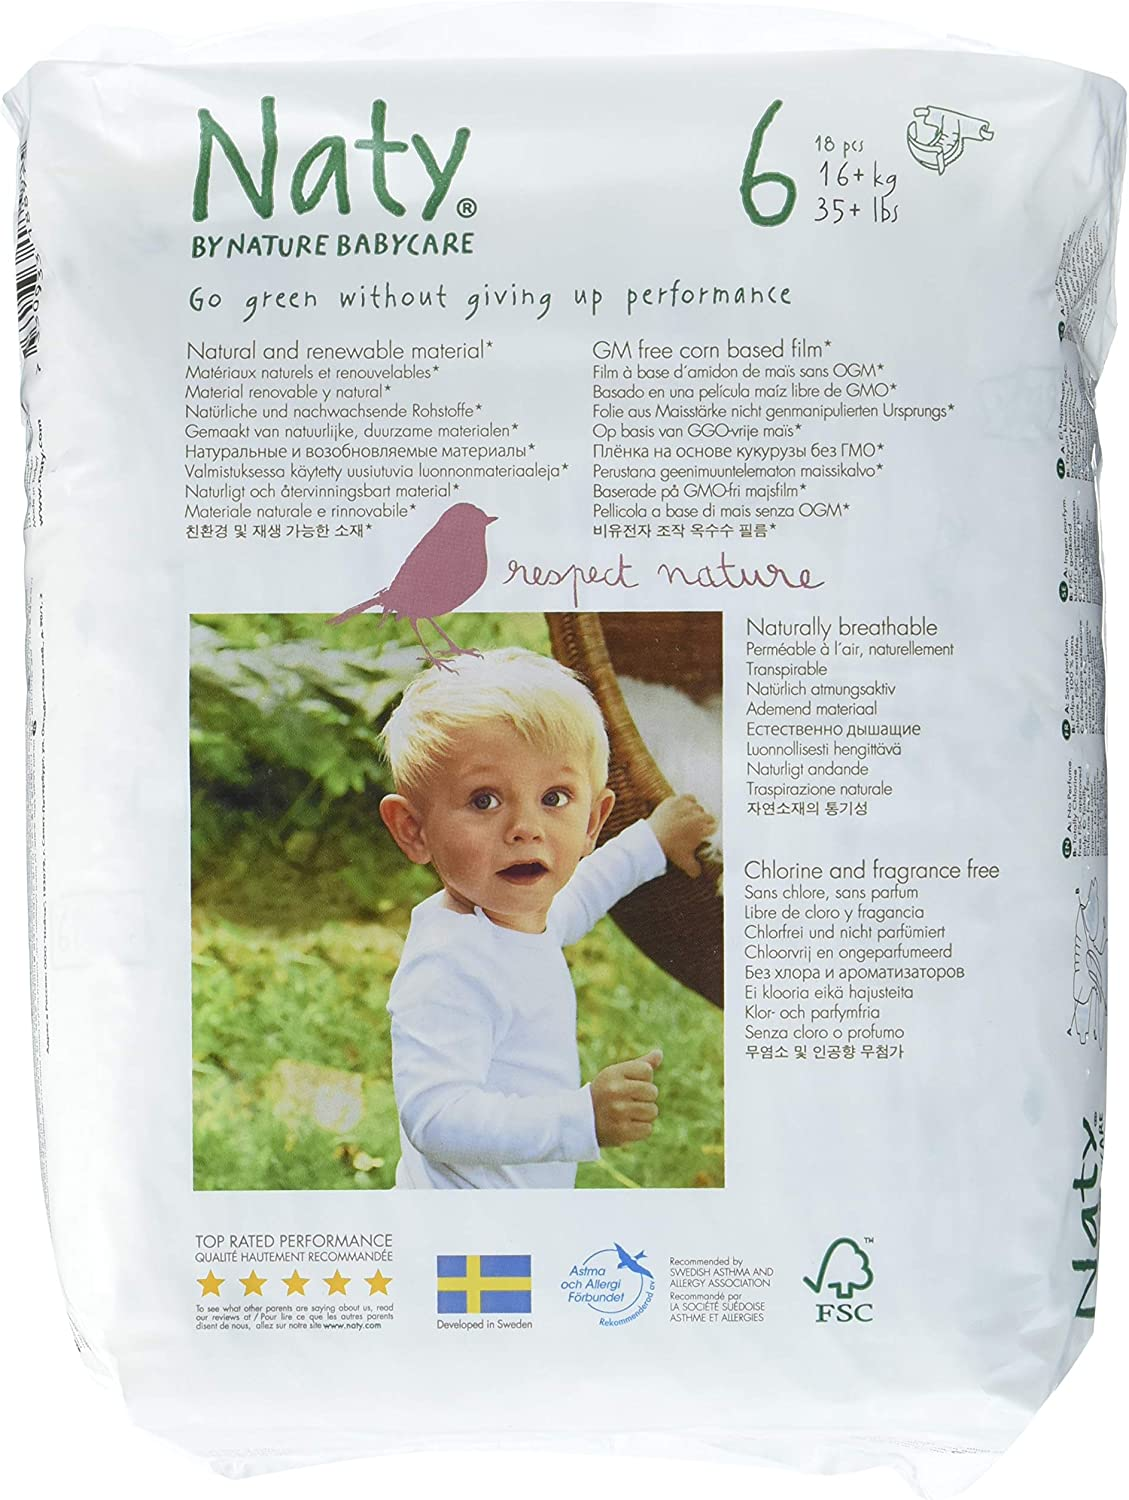 Eco by Naty Babycare 4 paquets de 18 Couches /Écologiques Jetables Taille 6-16 kg 72 couches